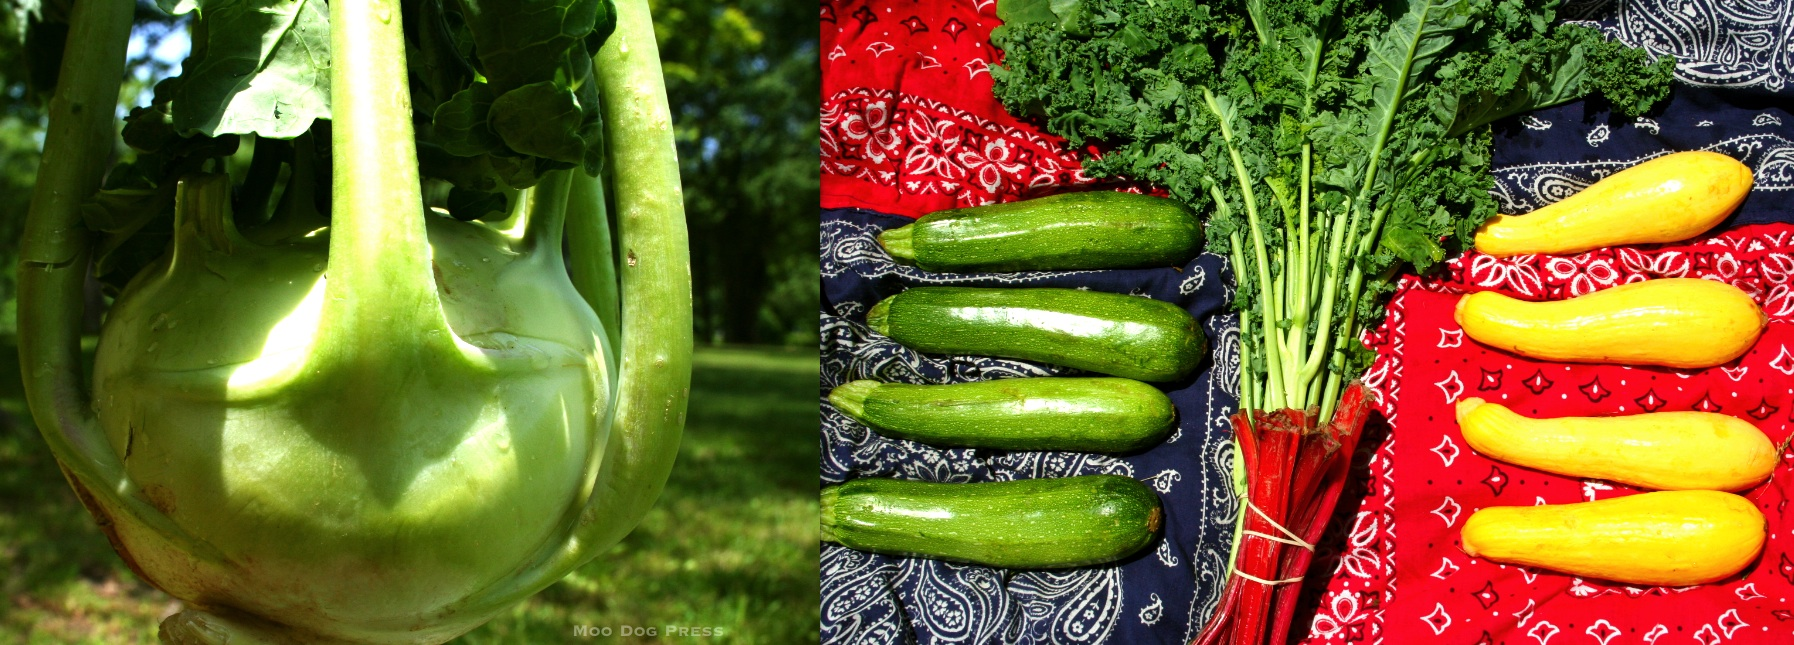 Colorful, rich in vitamins, grown by Killam & Bassette, part of week two CSA.